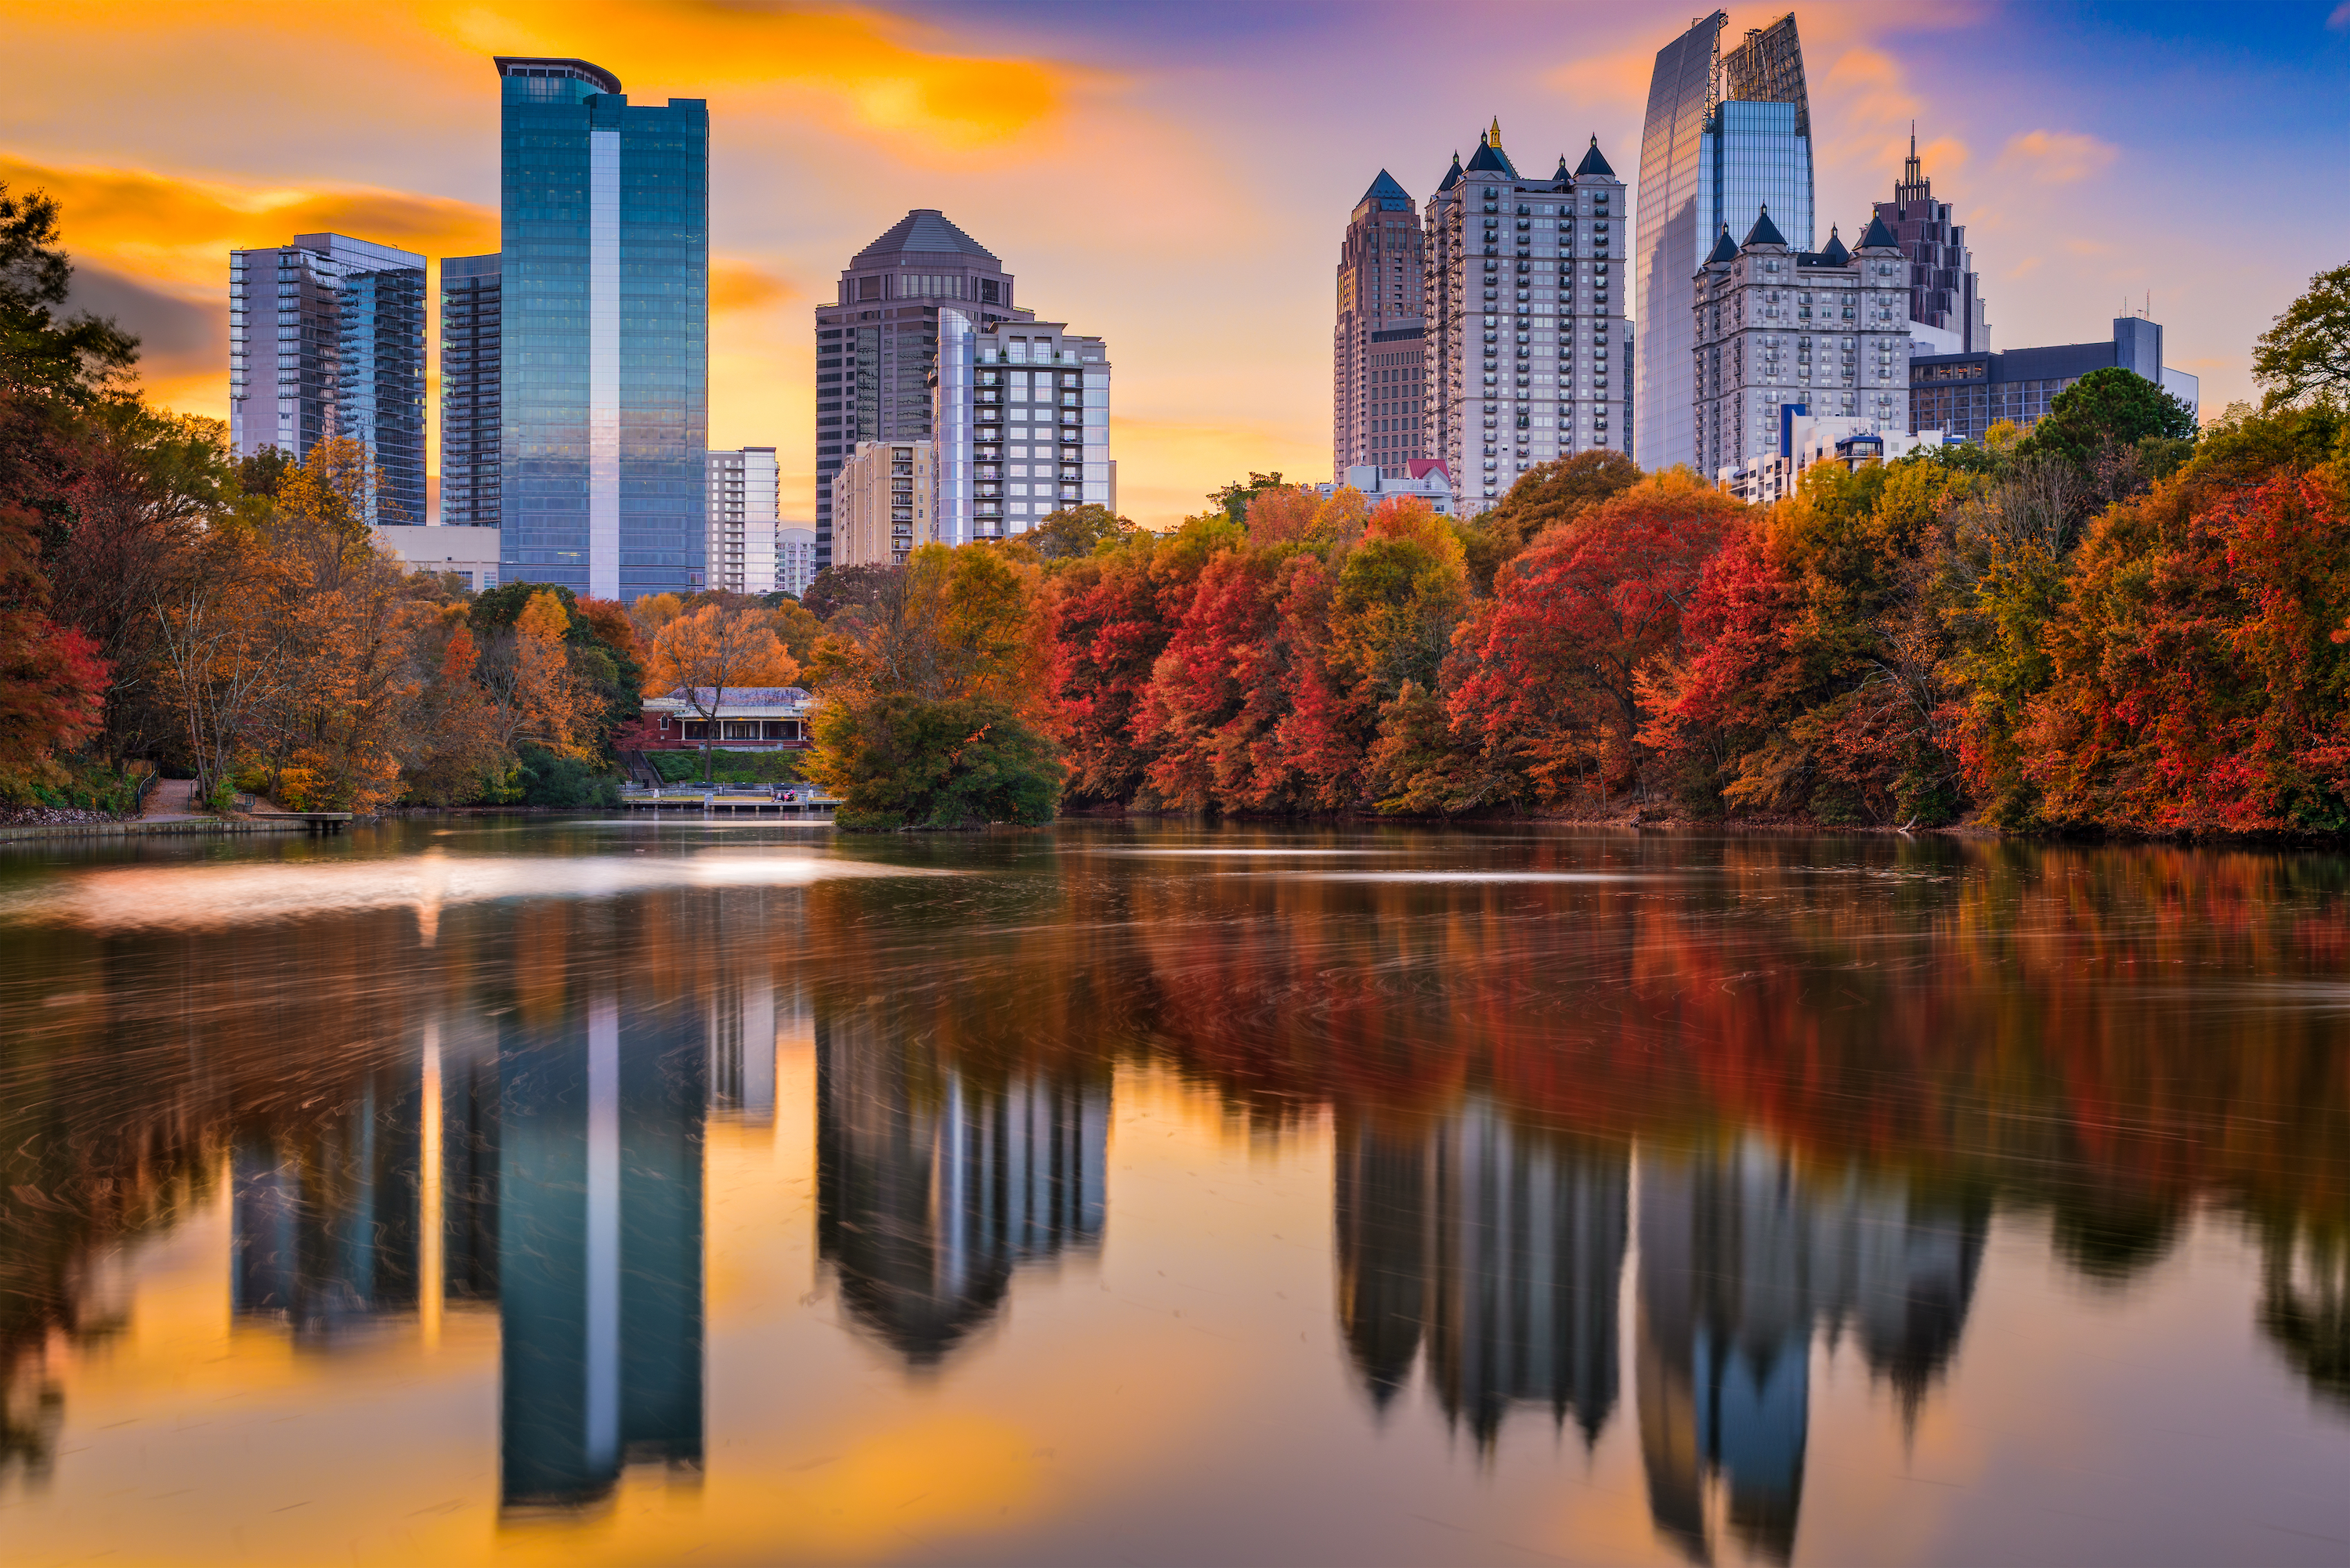 Red and orange trees sit adjacent to a calm river, with the skyscrapers from the Atlanta skyline in the background.